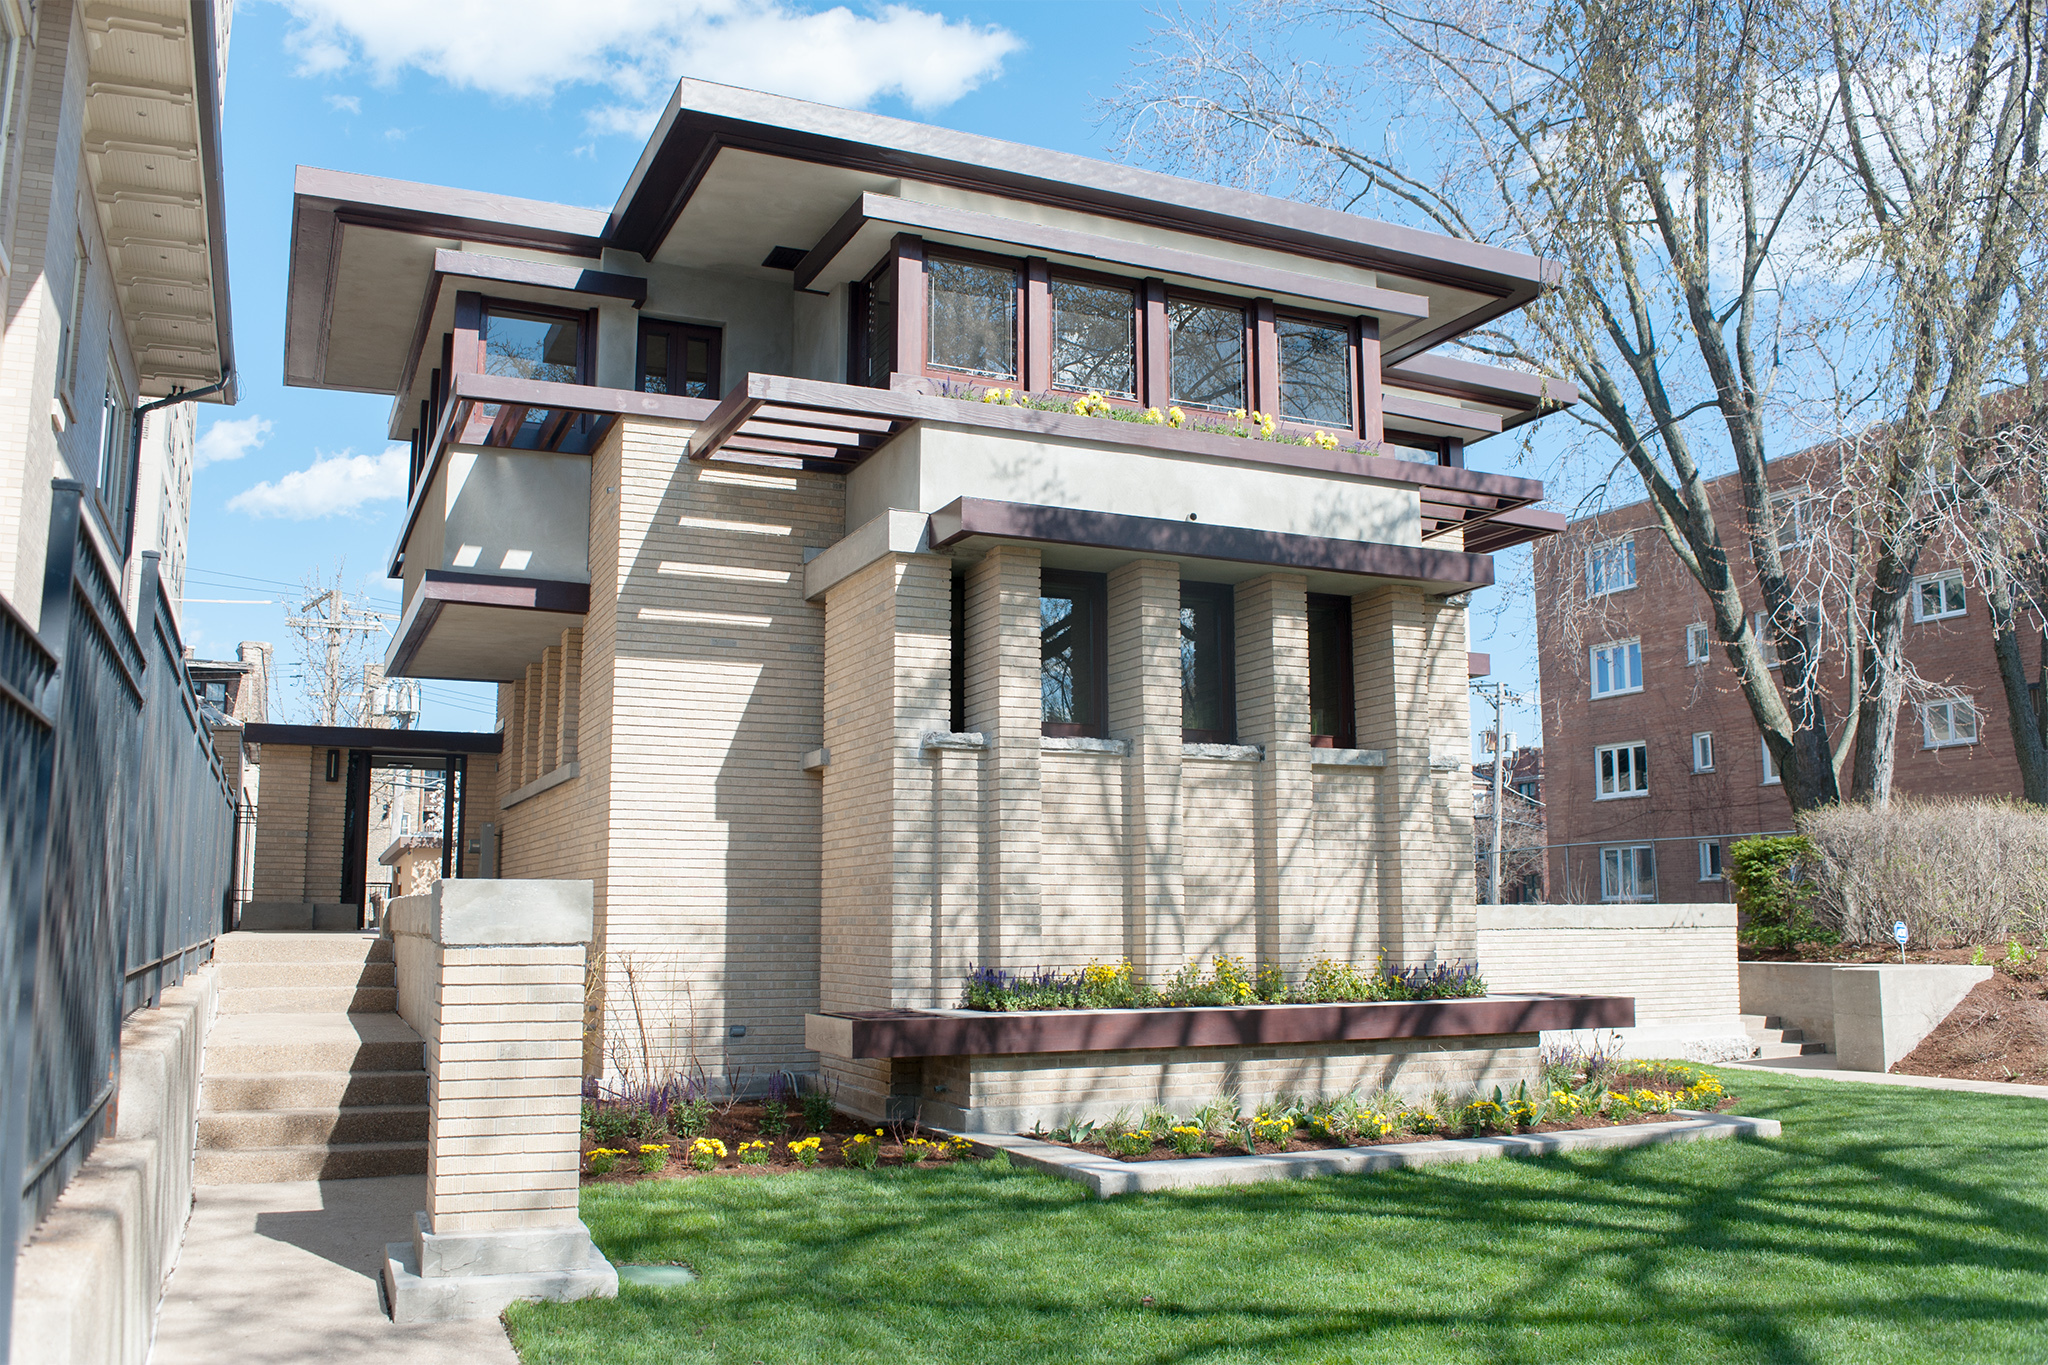 Built in 1915, the Emil Bach house in Rogers Park, designed by Frank Lloyd Wright, is now available for nightly rental or for private events.